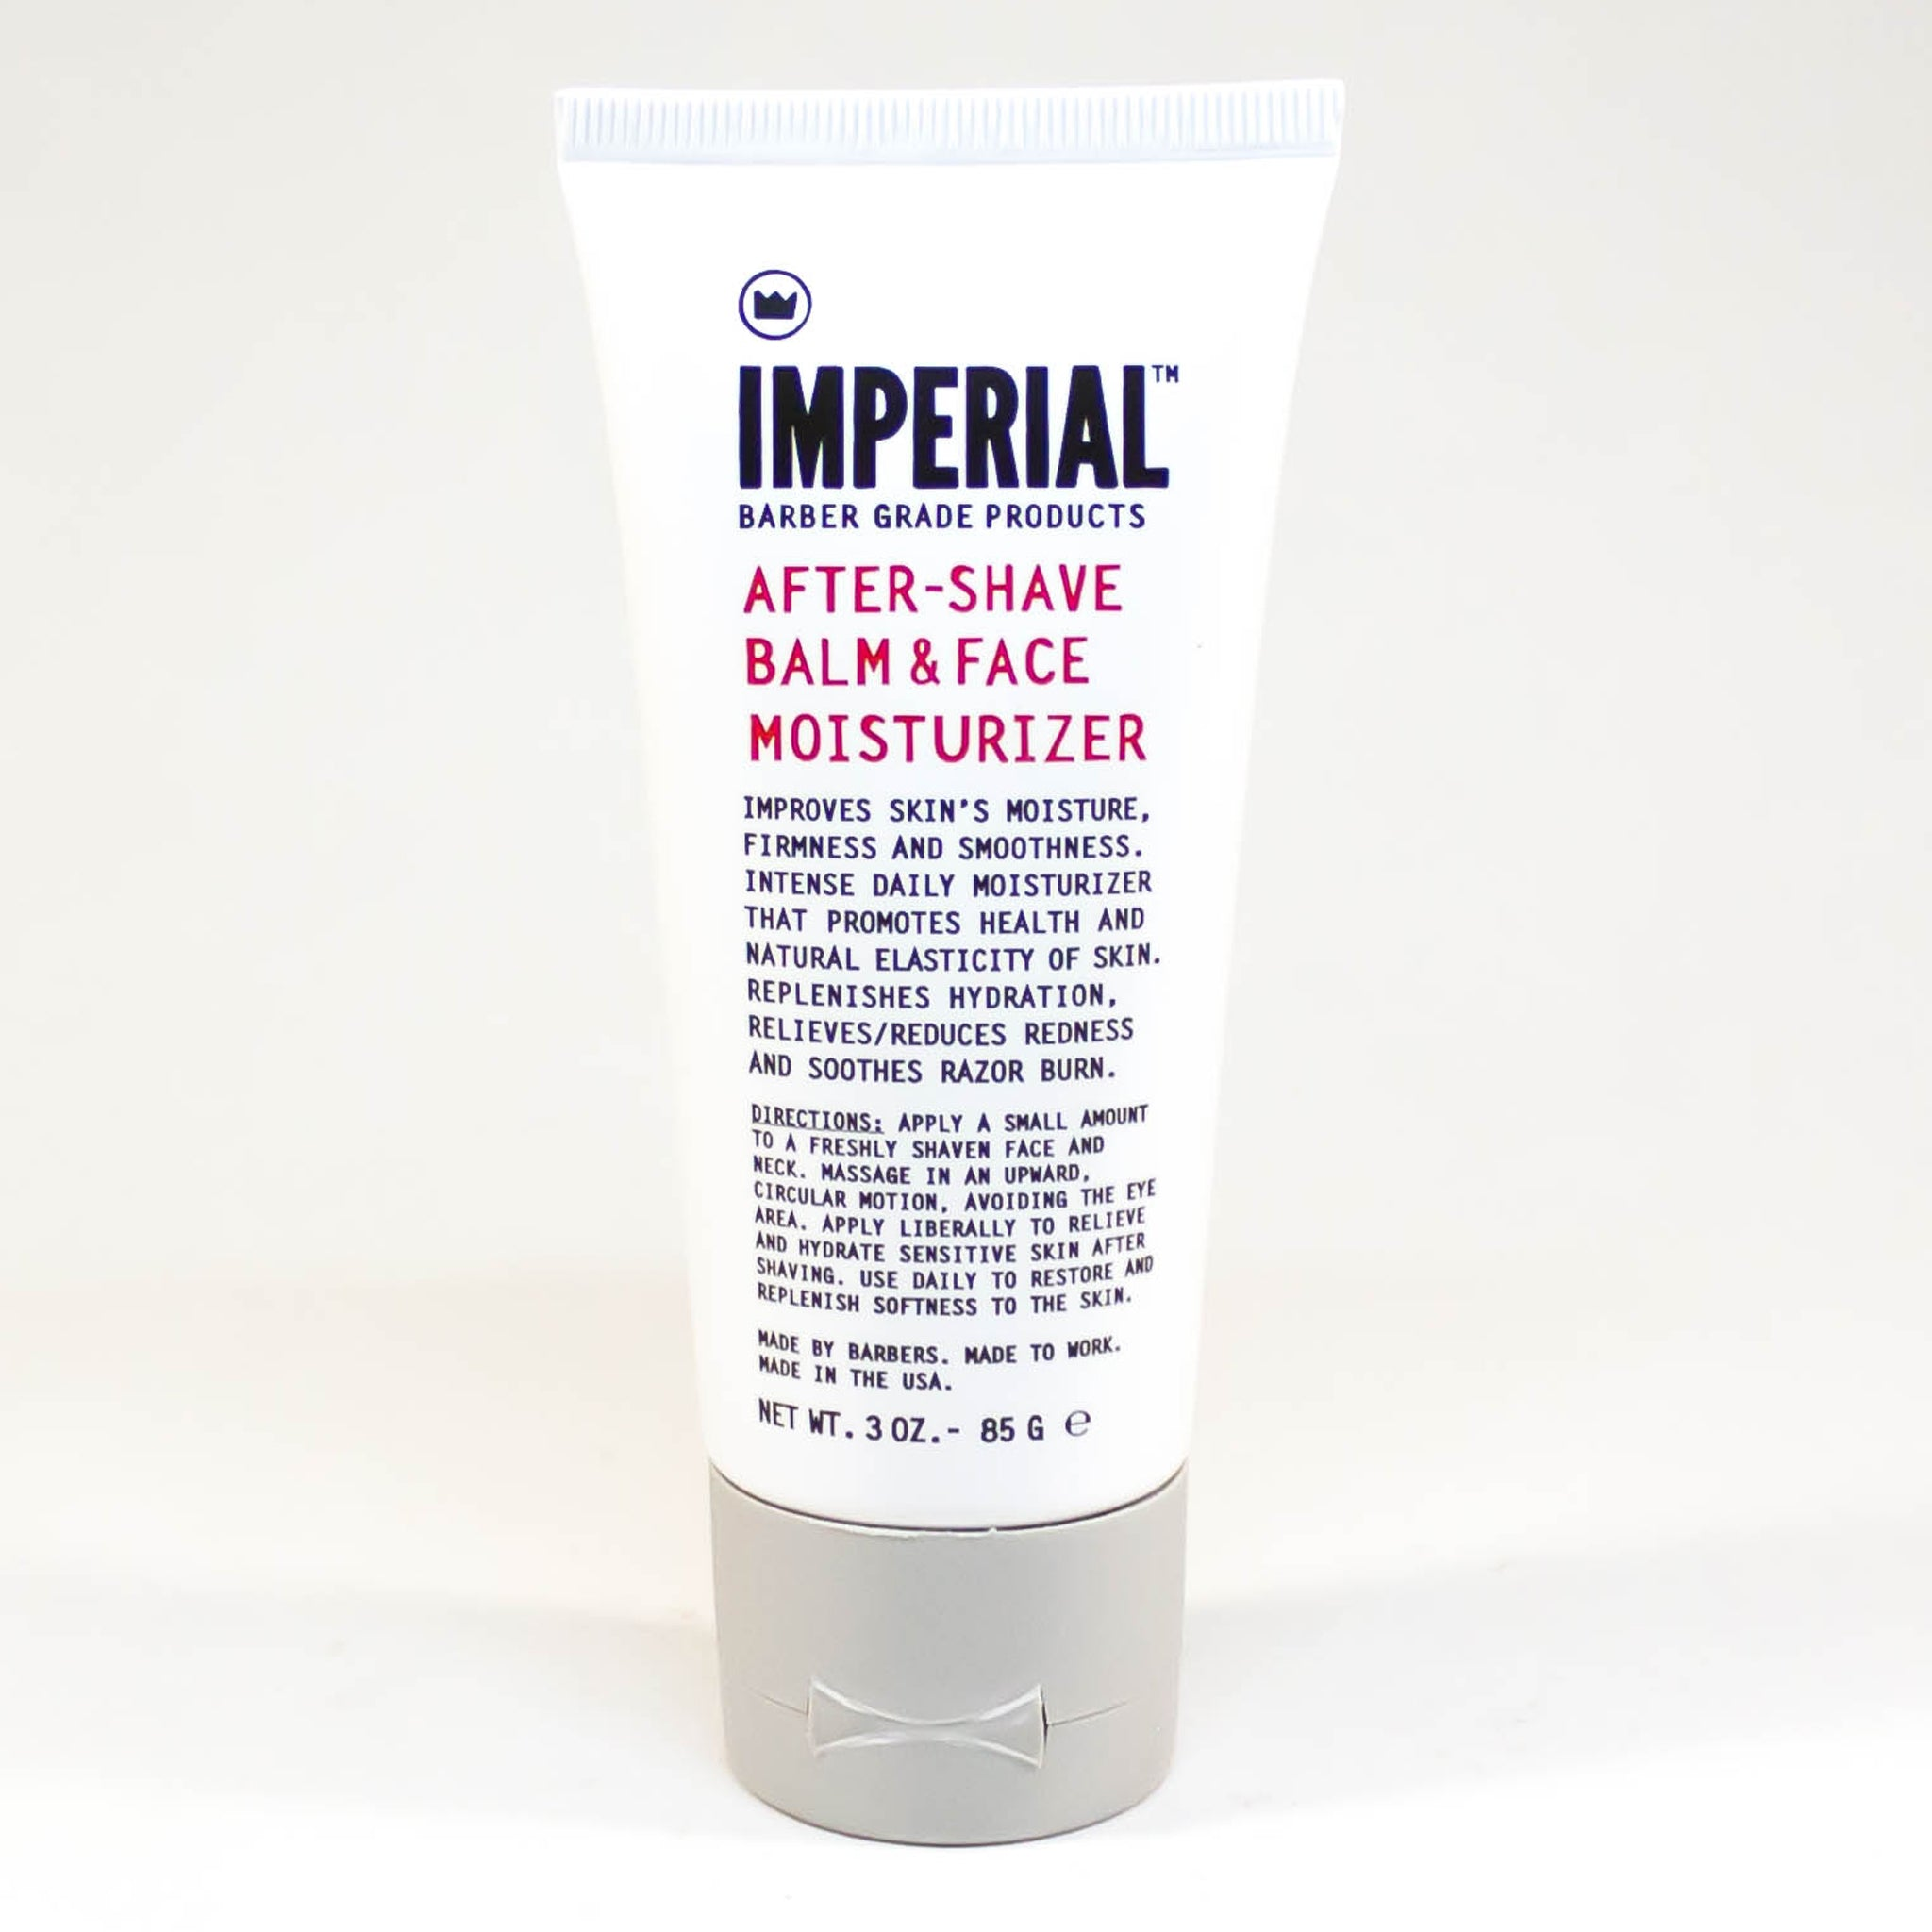 Imperial After-Shave Balm and Face Moisturizer